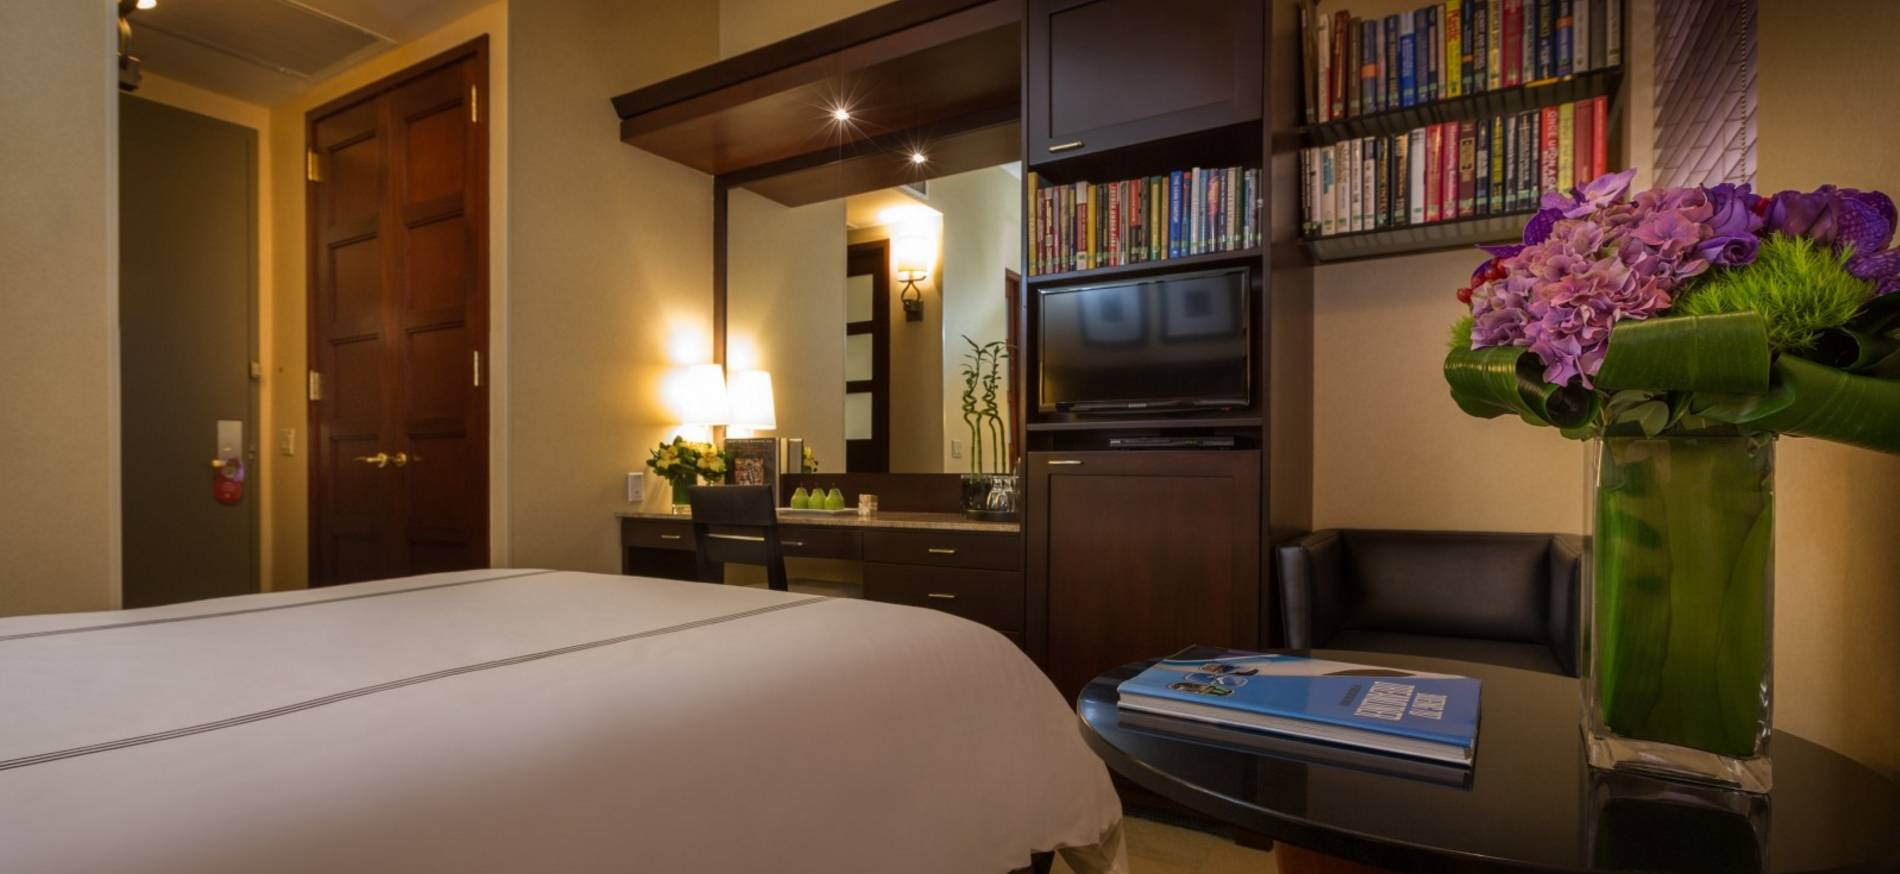 library-hotel